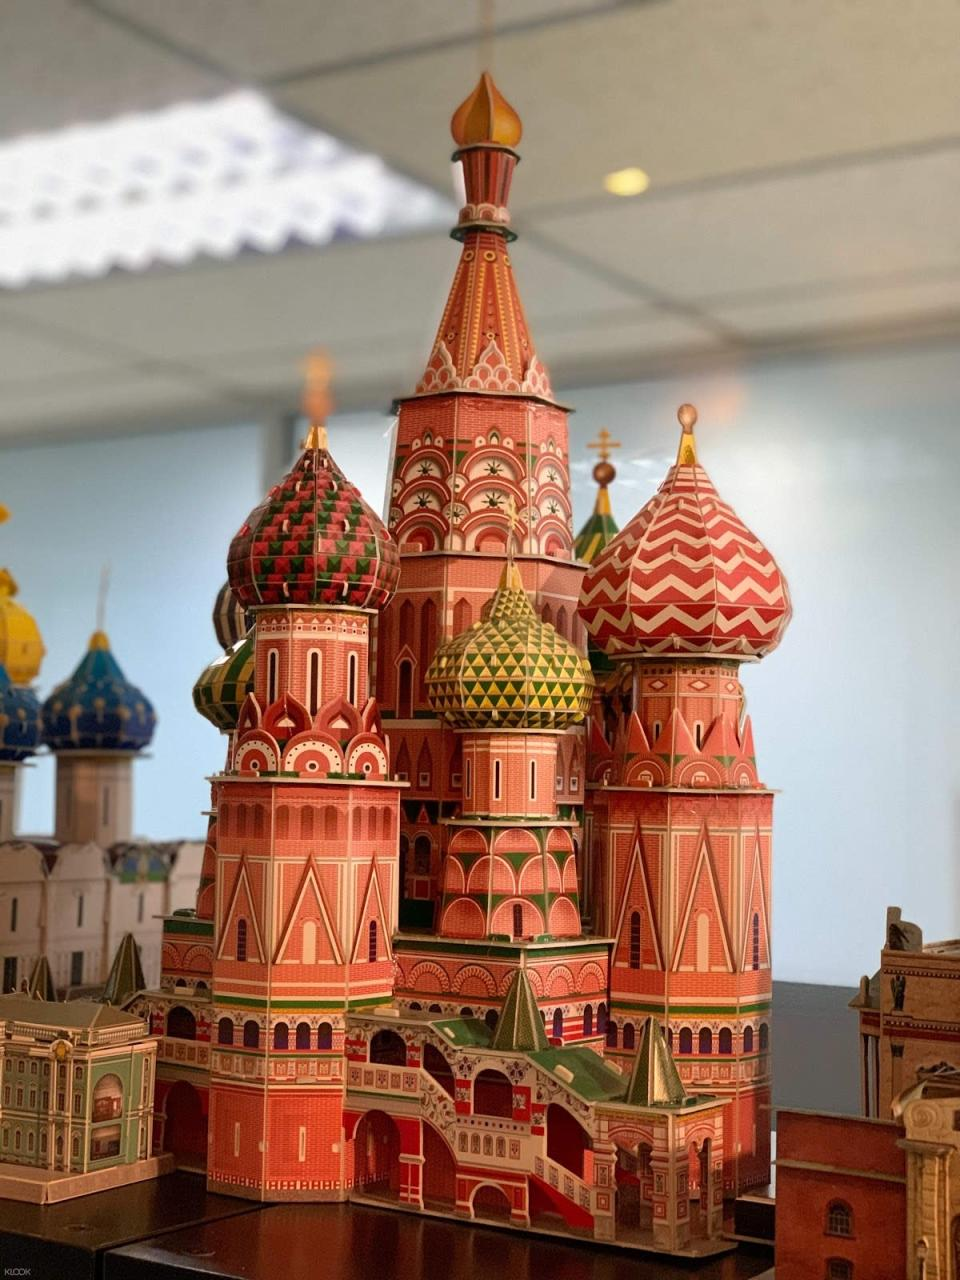 Source: Discover Russia in SG